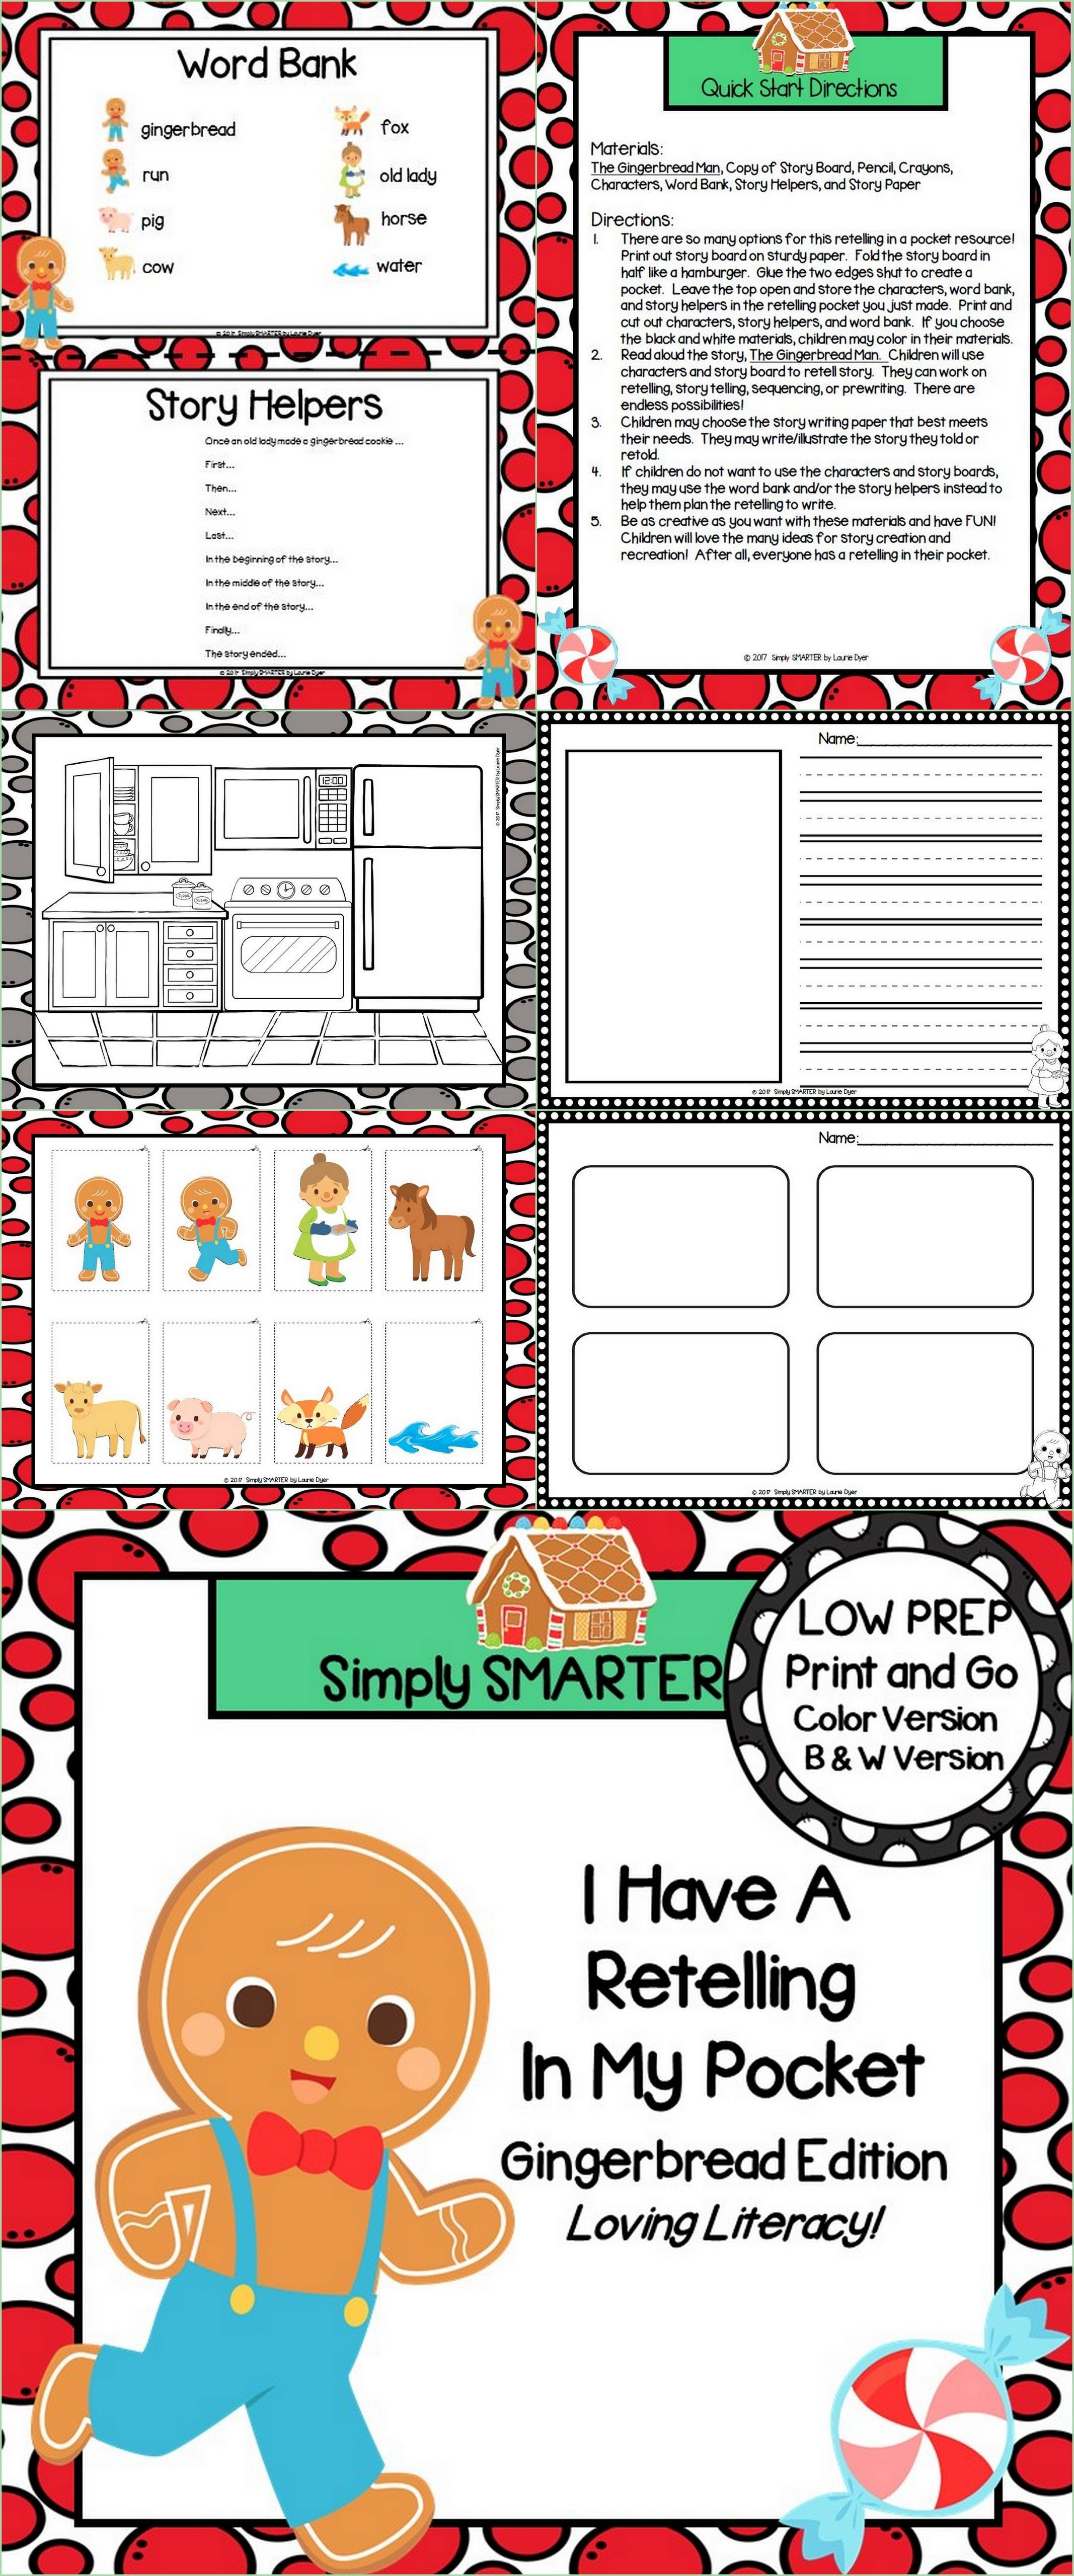 13 Three Billy Goats Gruff Worksheets Coloring